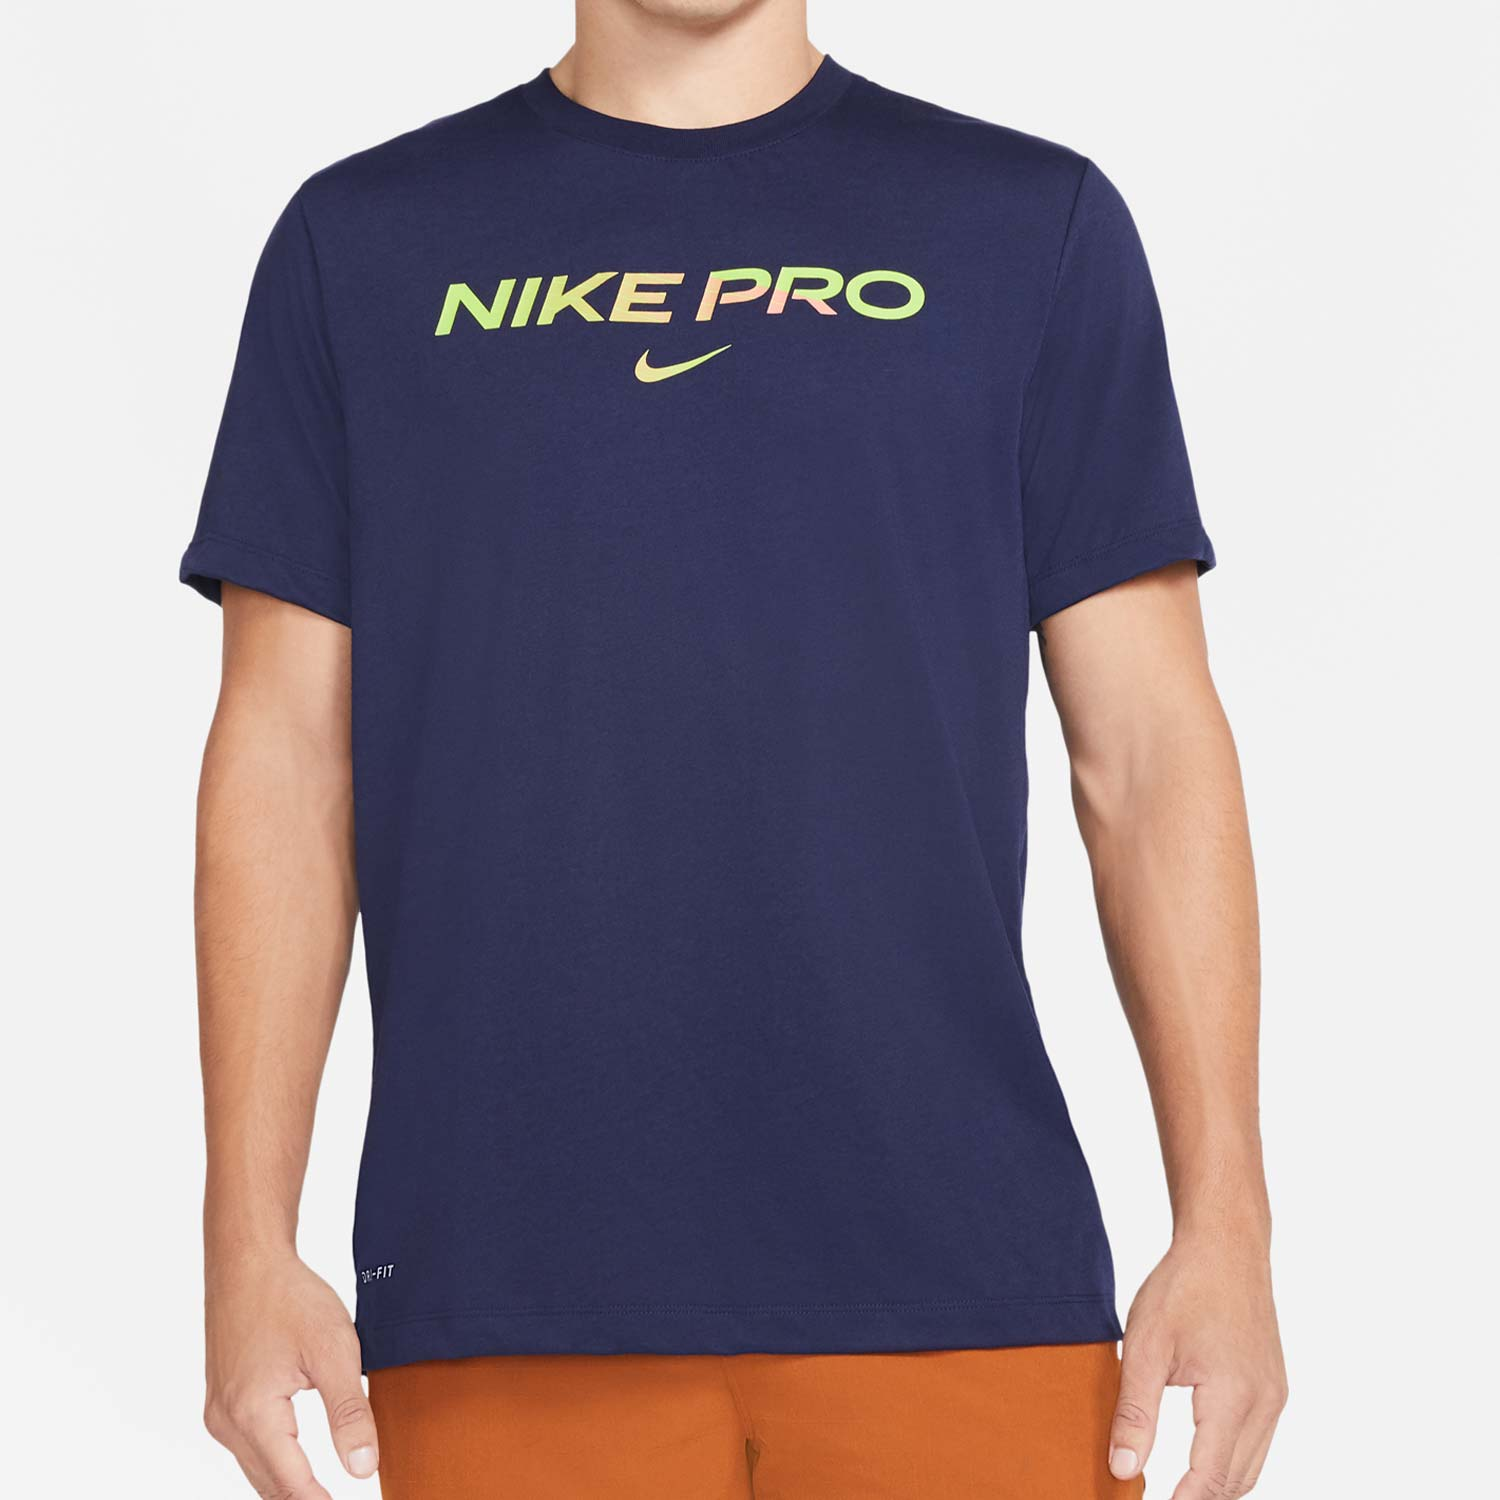 NIKE PROHerren-Shirt